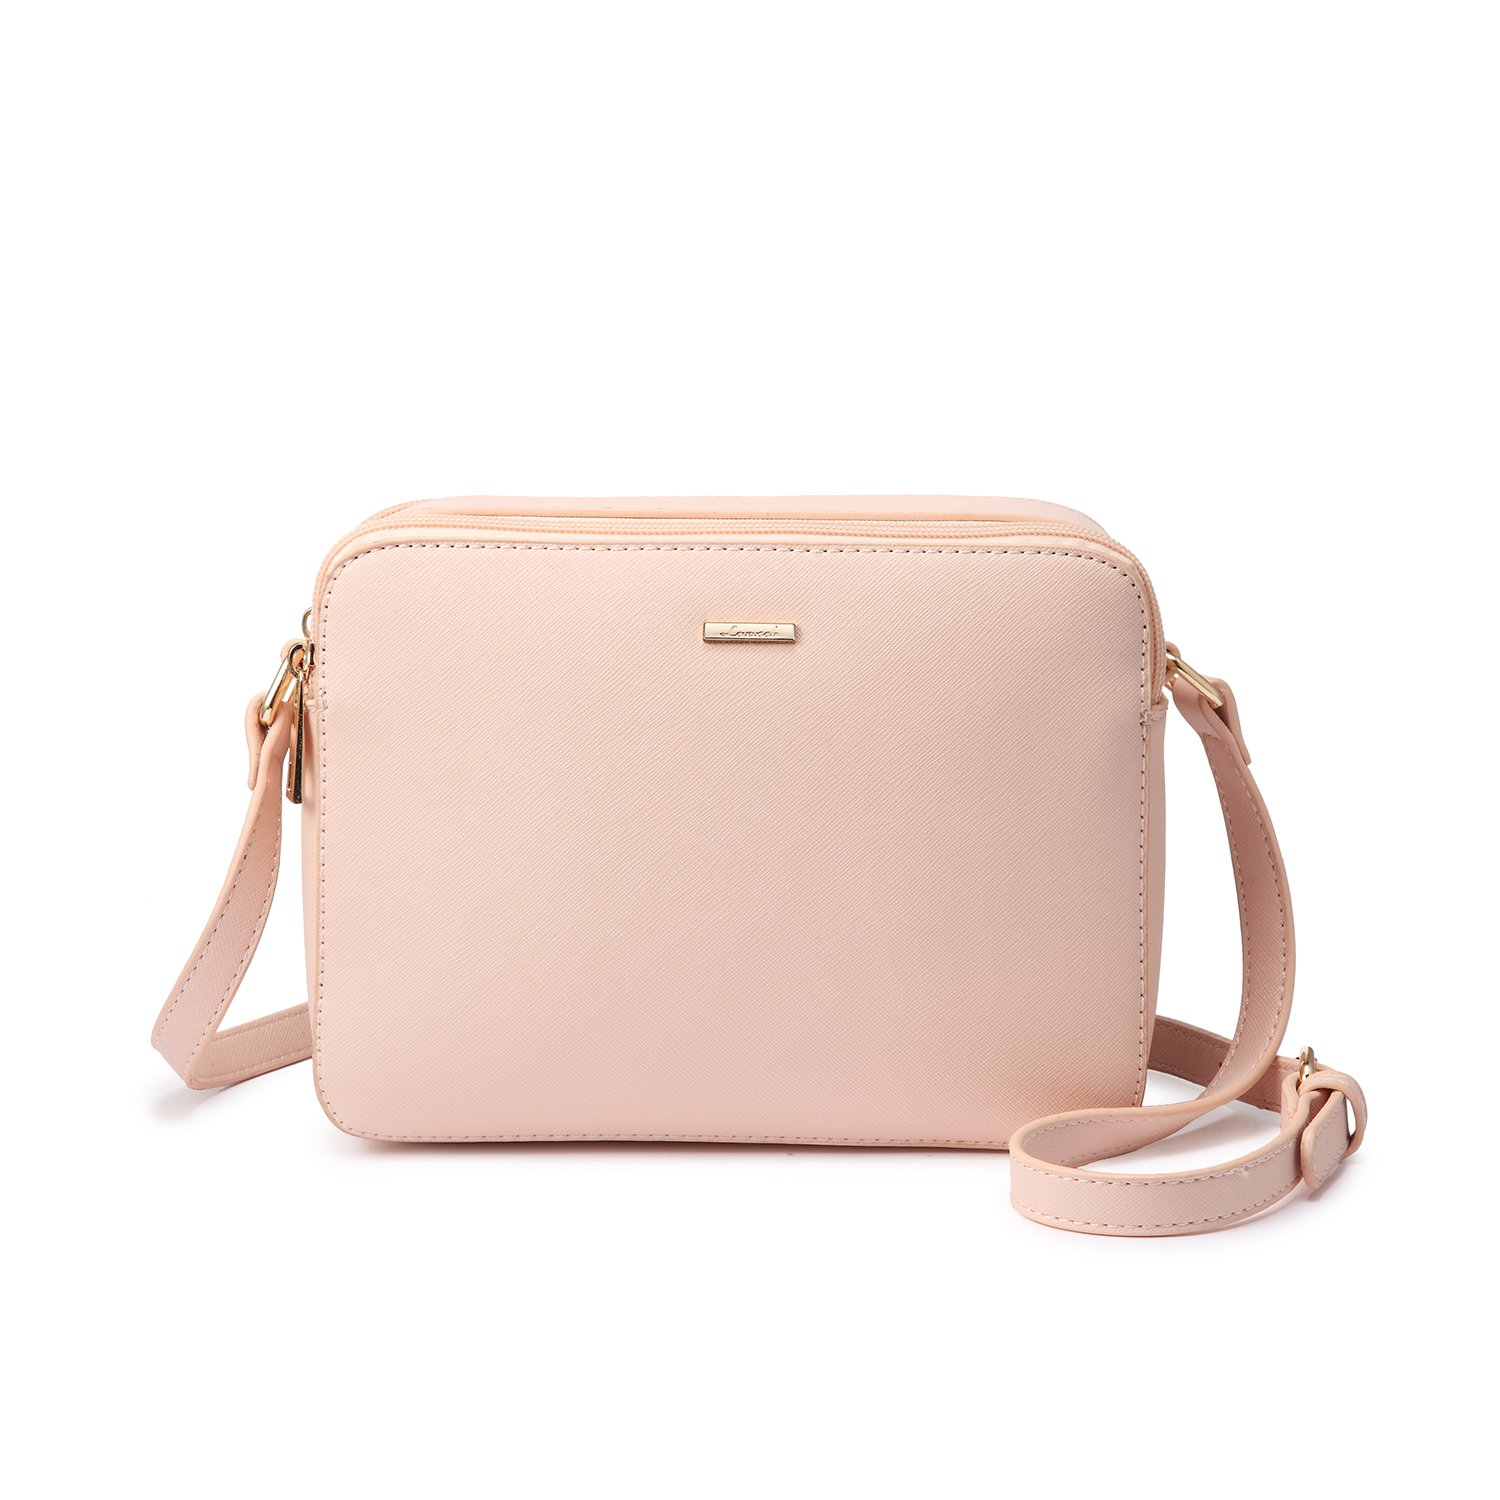 Double Zip Compartments Crossbody Bags for Women - Simple Style (Pink)